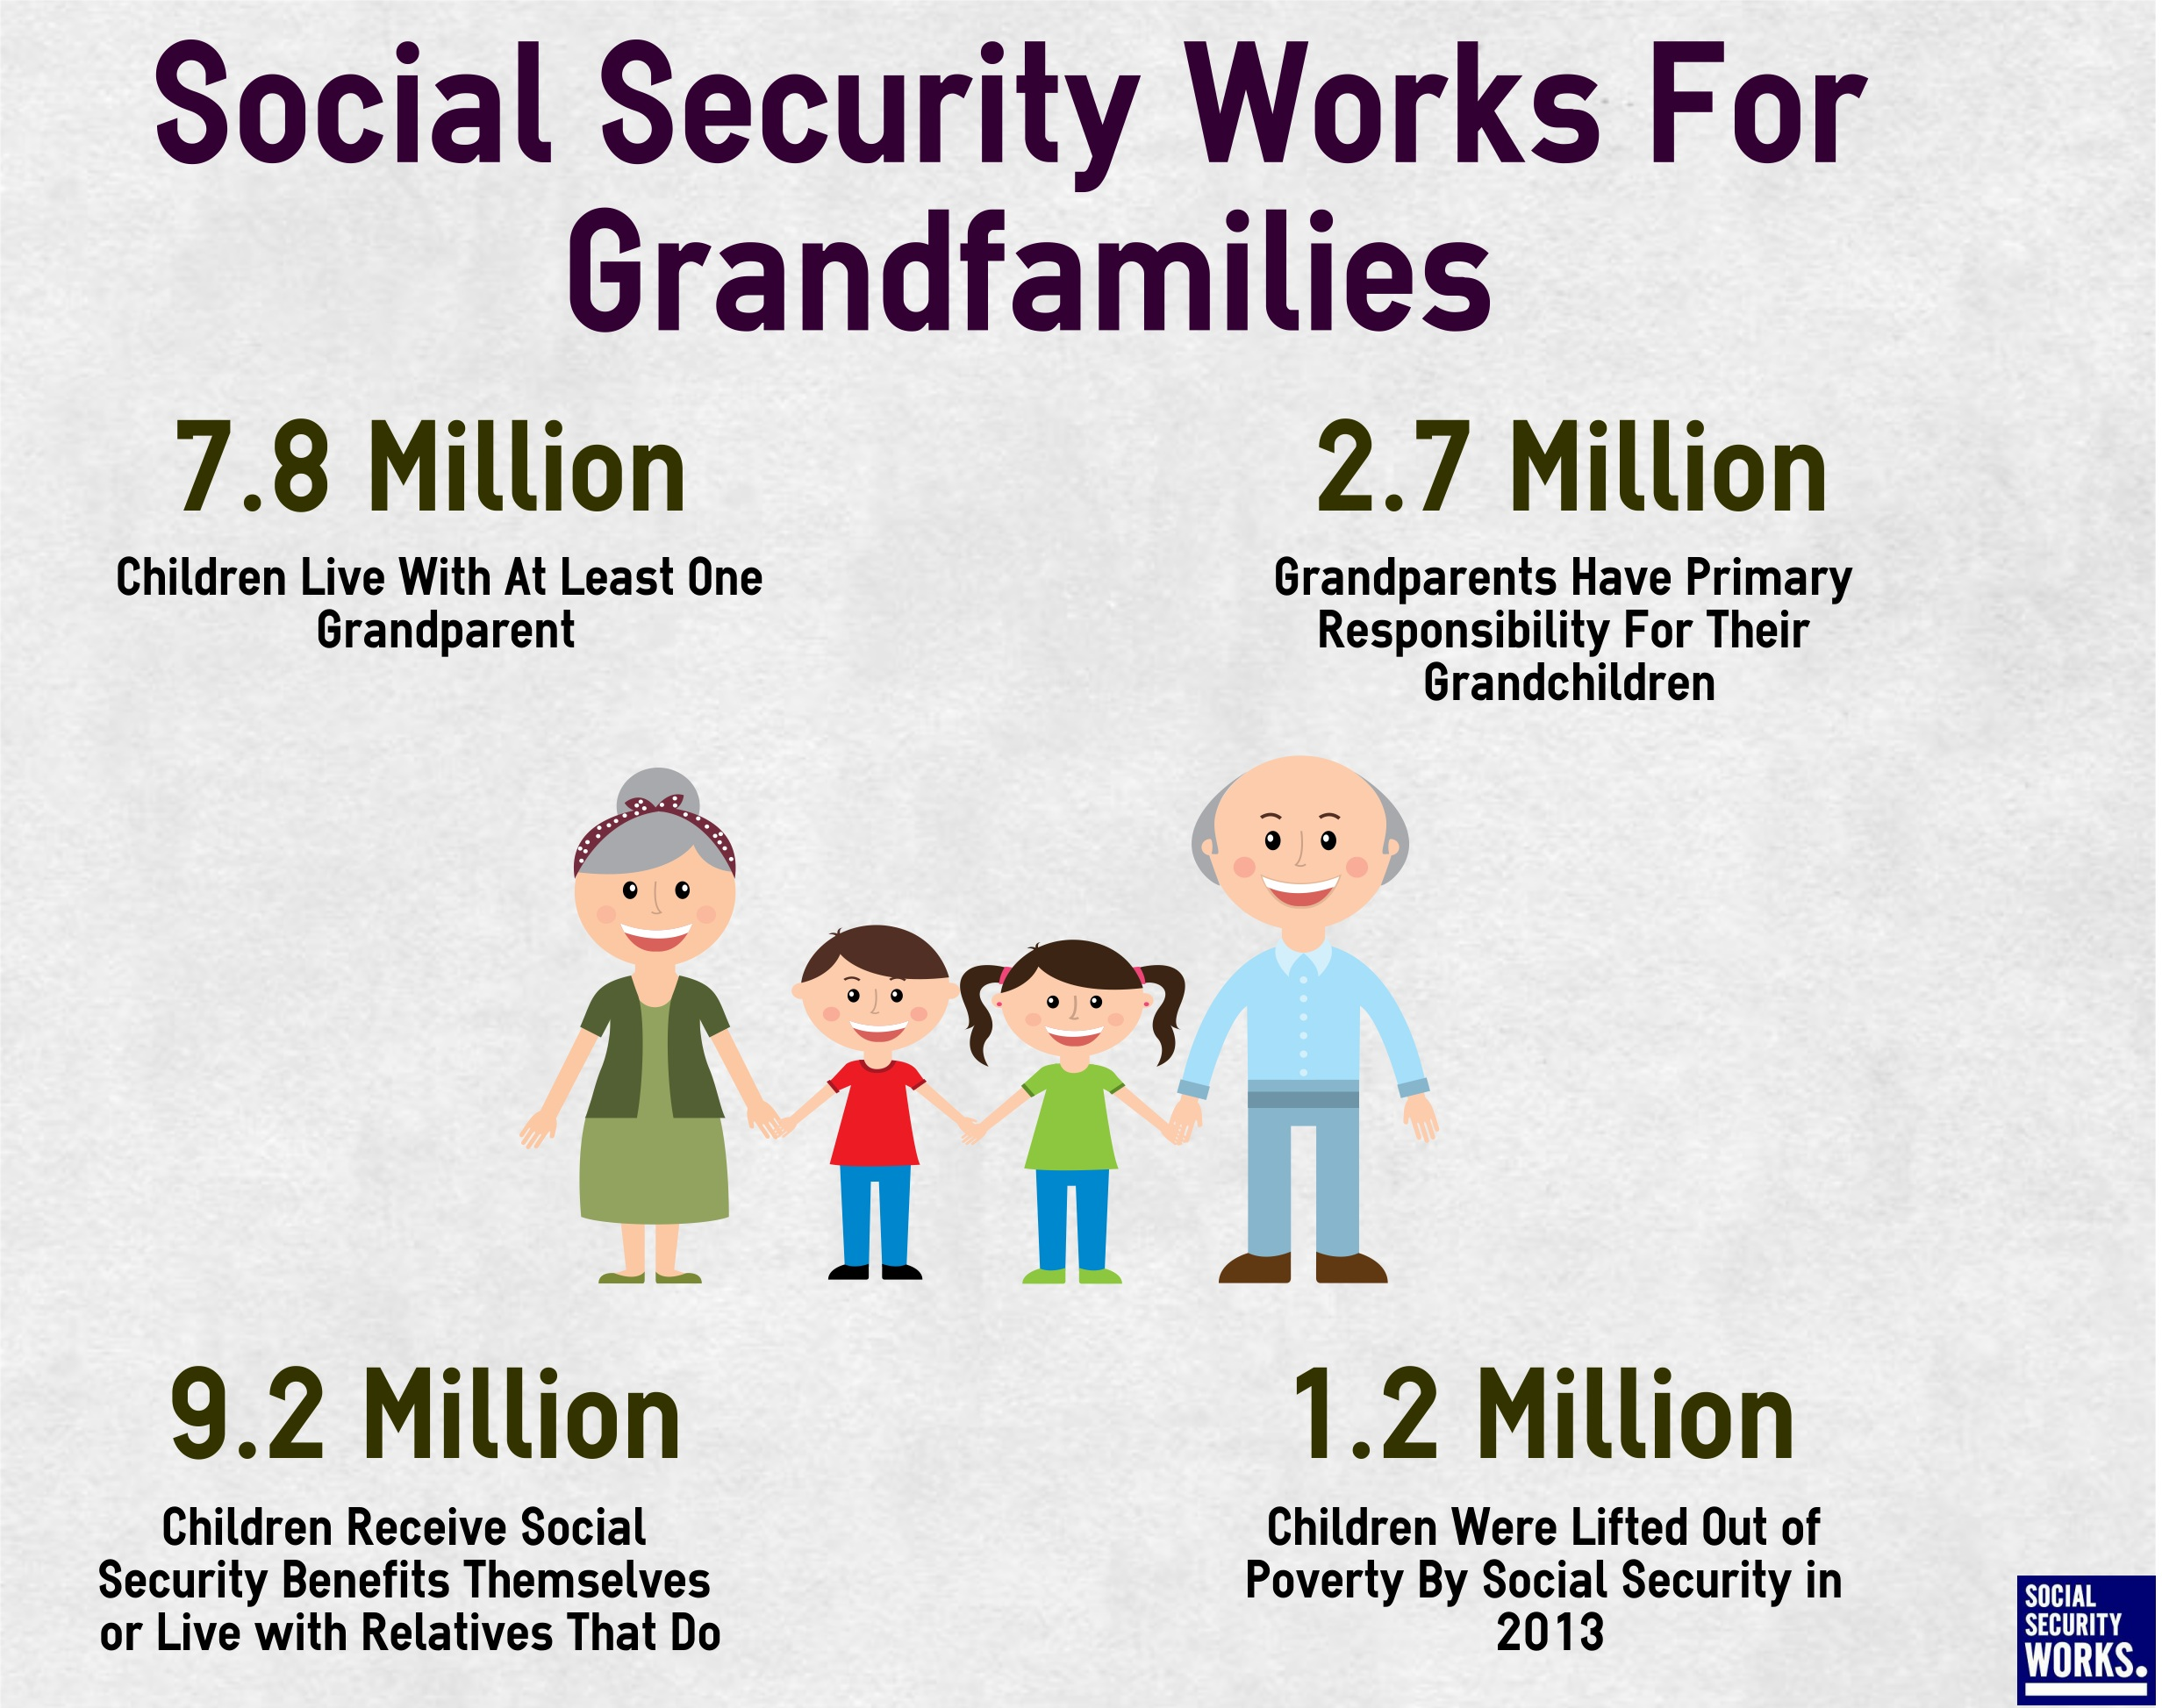 Can person receive primary caretaker benefits from social security?